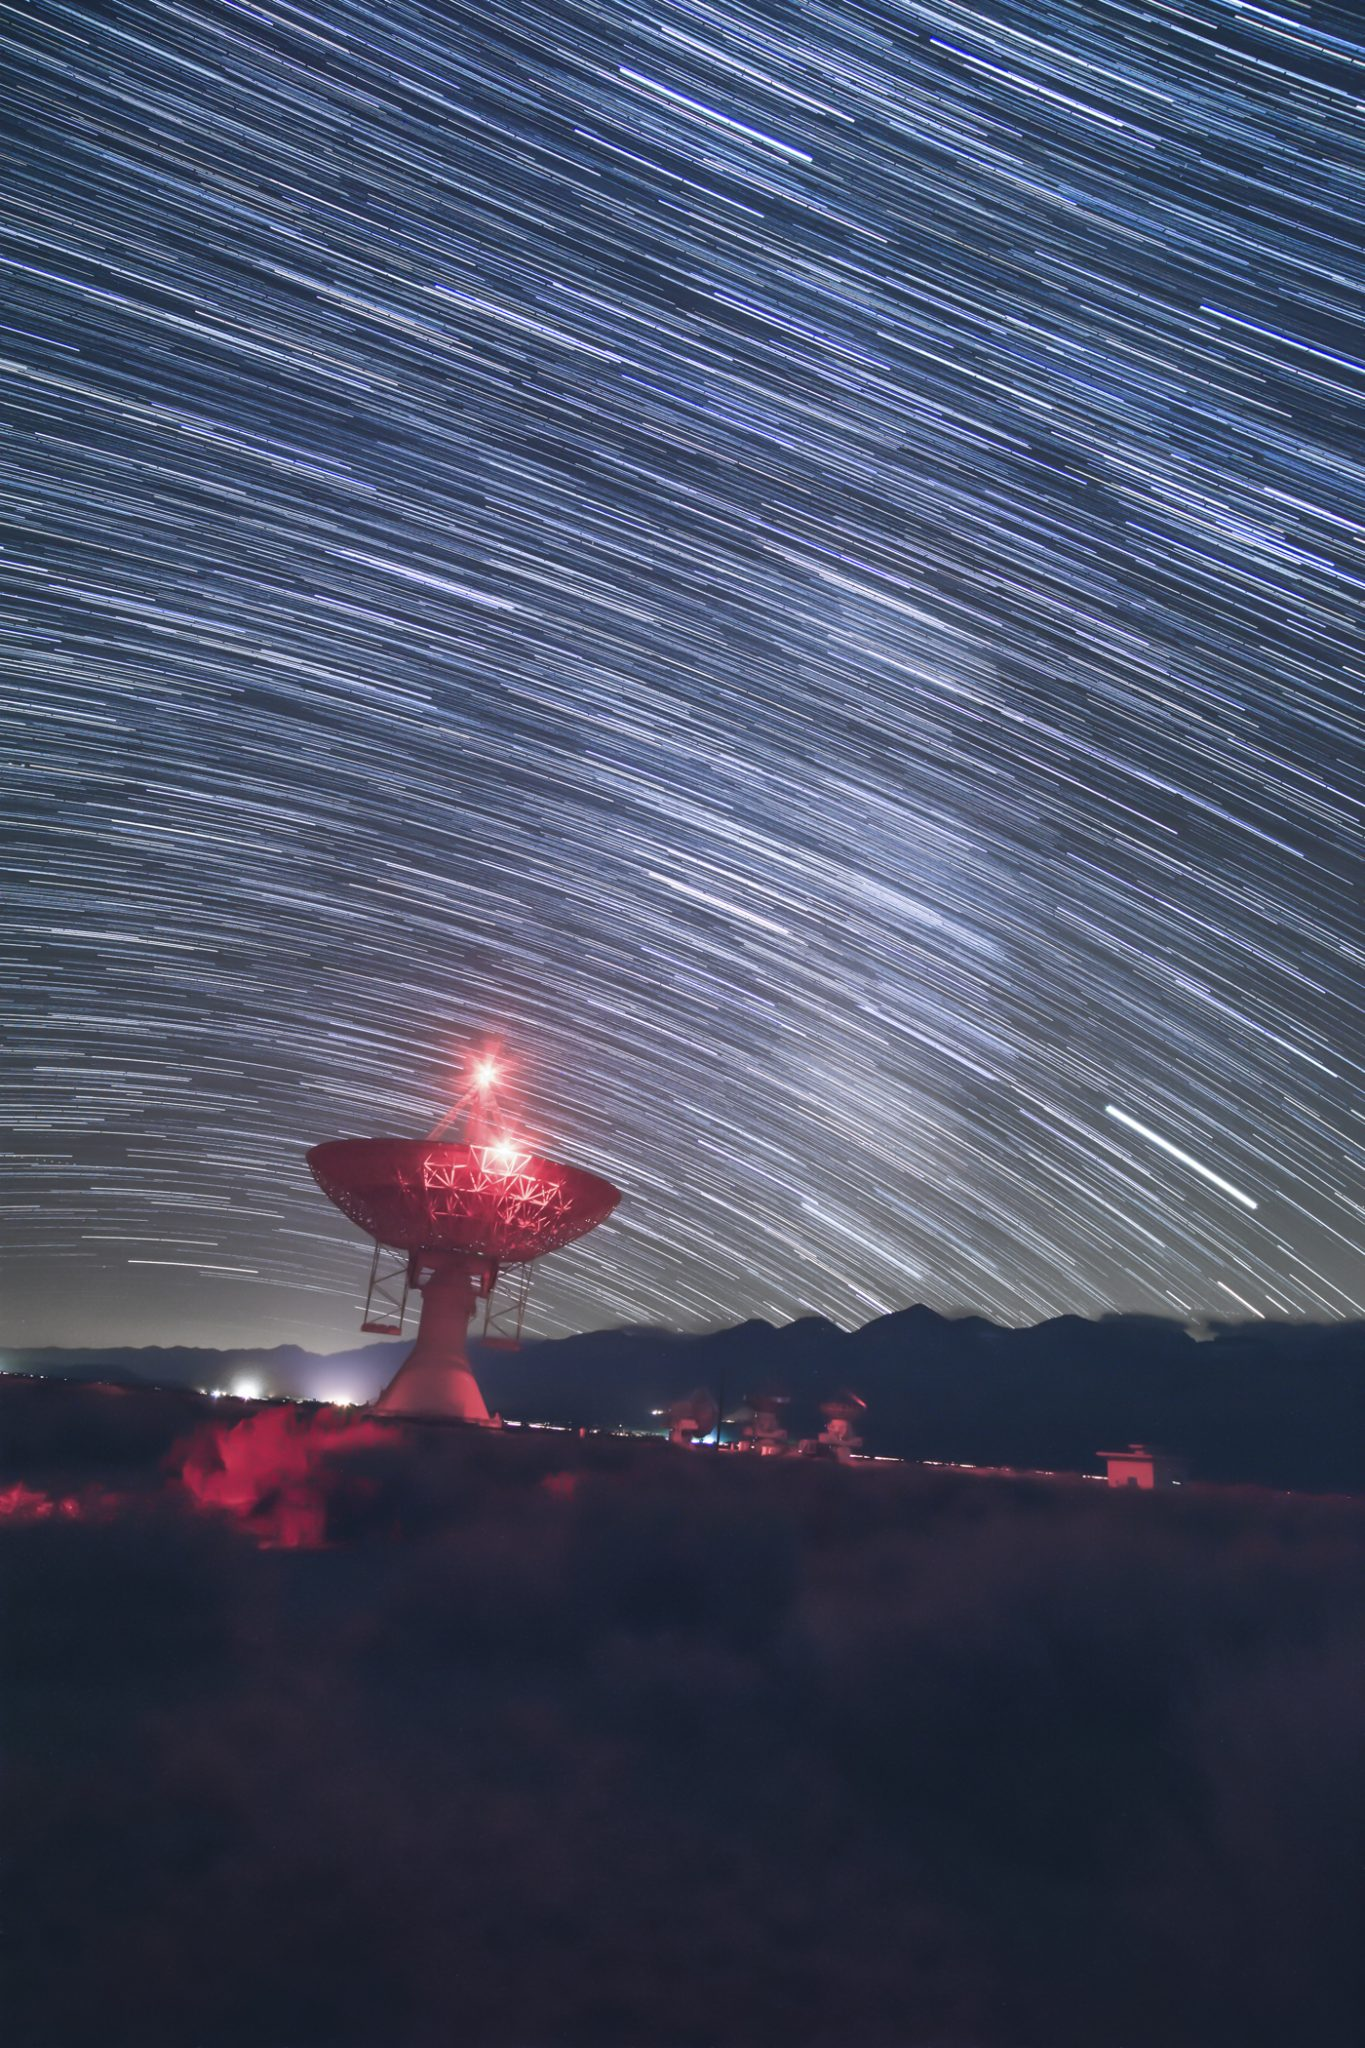 Thomson-Lindsay_Star Trails Over Radio Tower-Photo 12x18